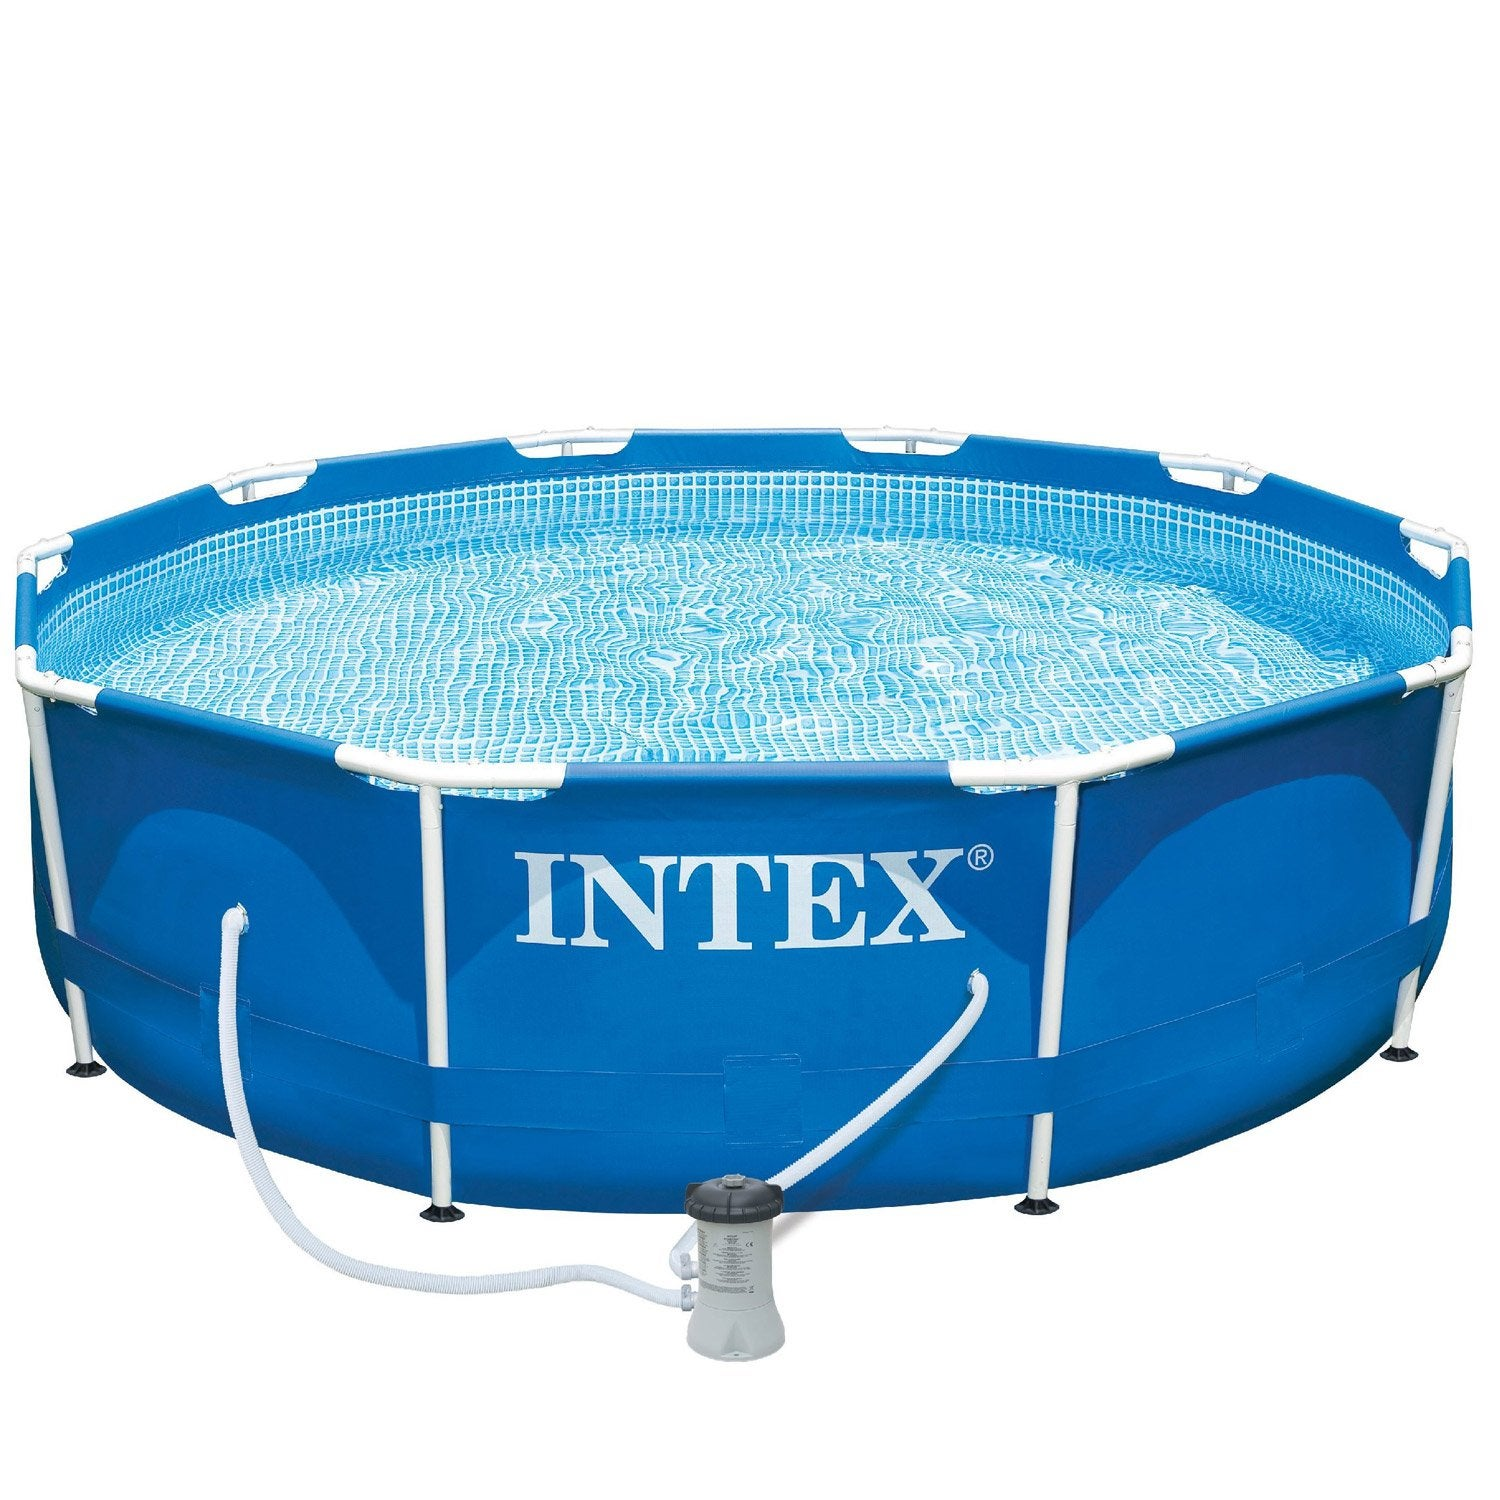 Piscine hors sol autoportante tubulaire metal frame intex for Liner piscine hors sol tubulaire